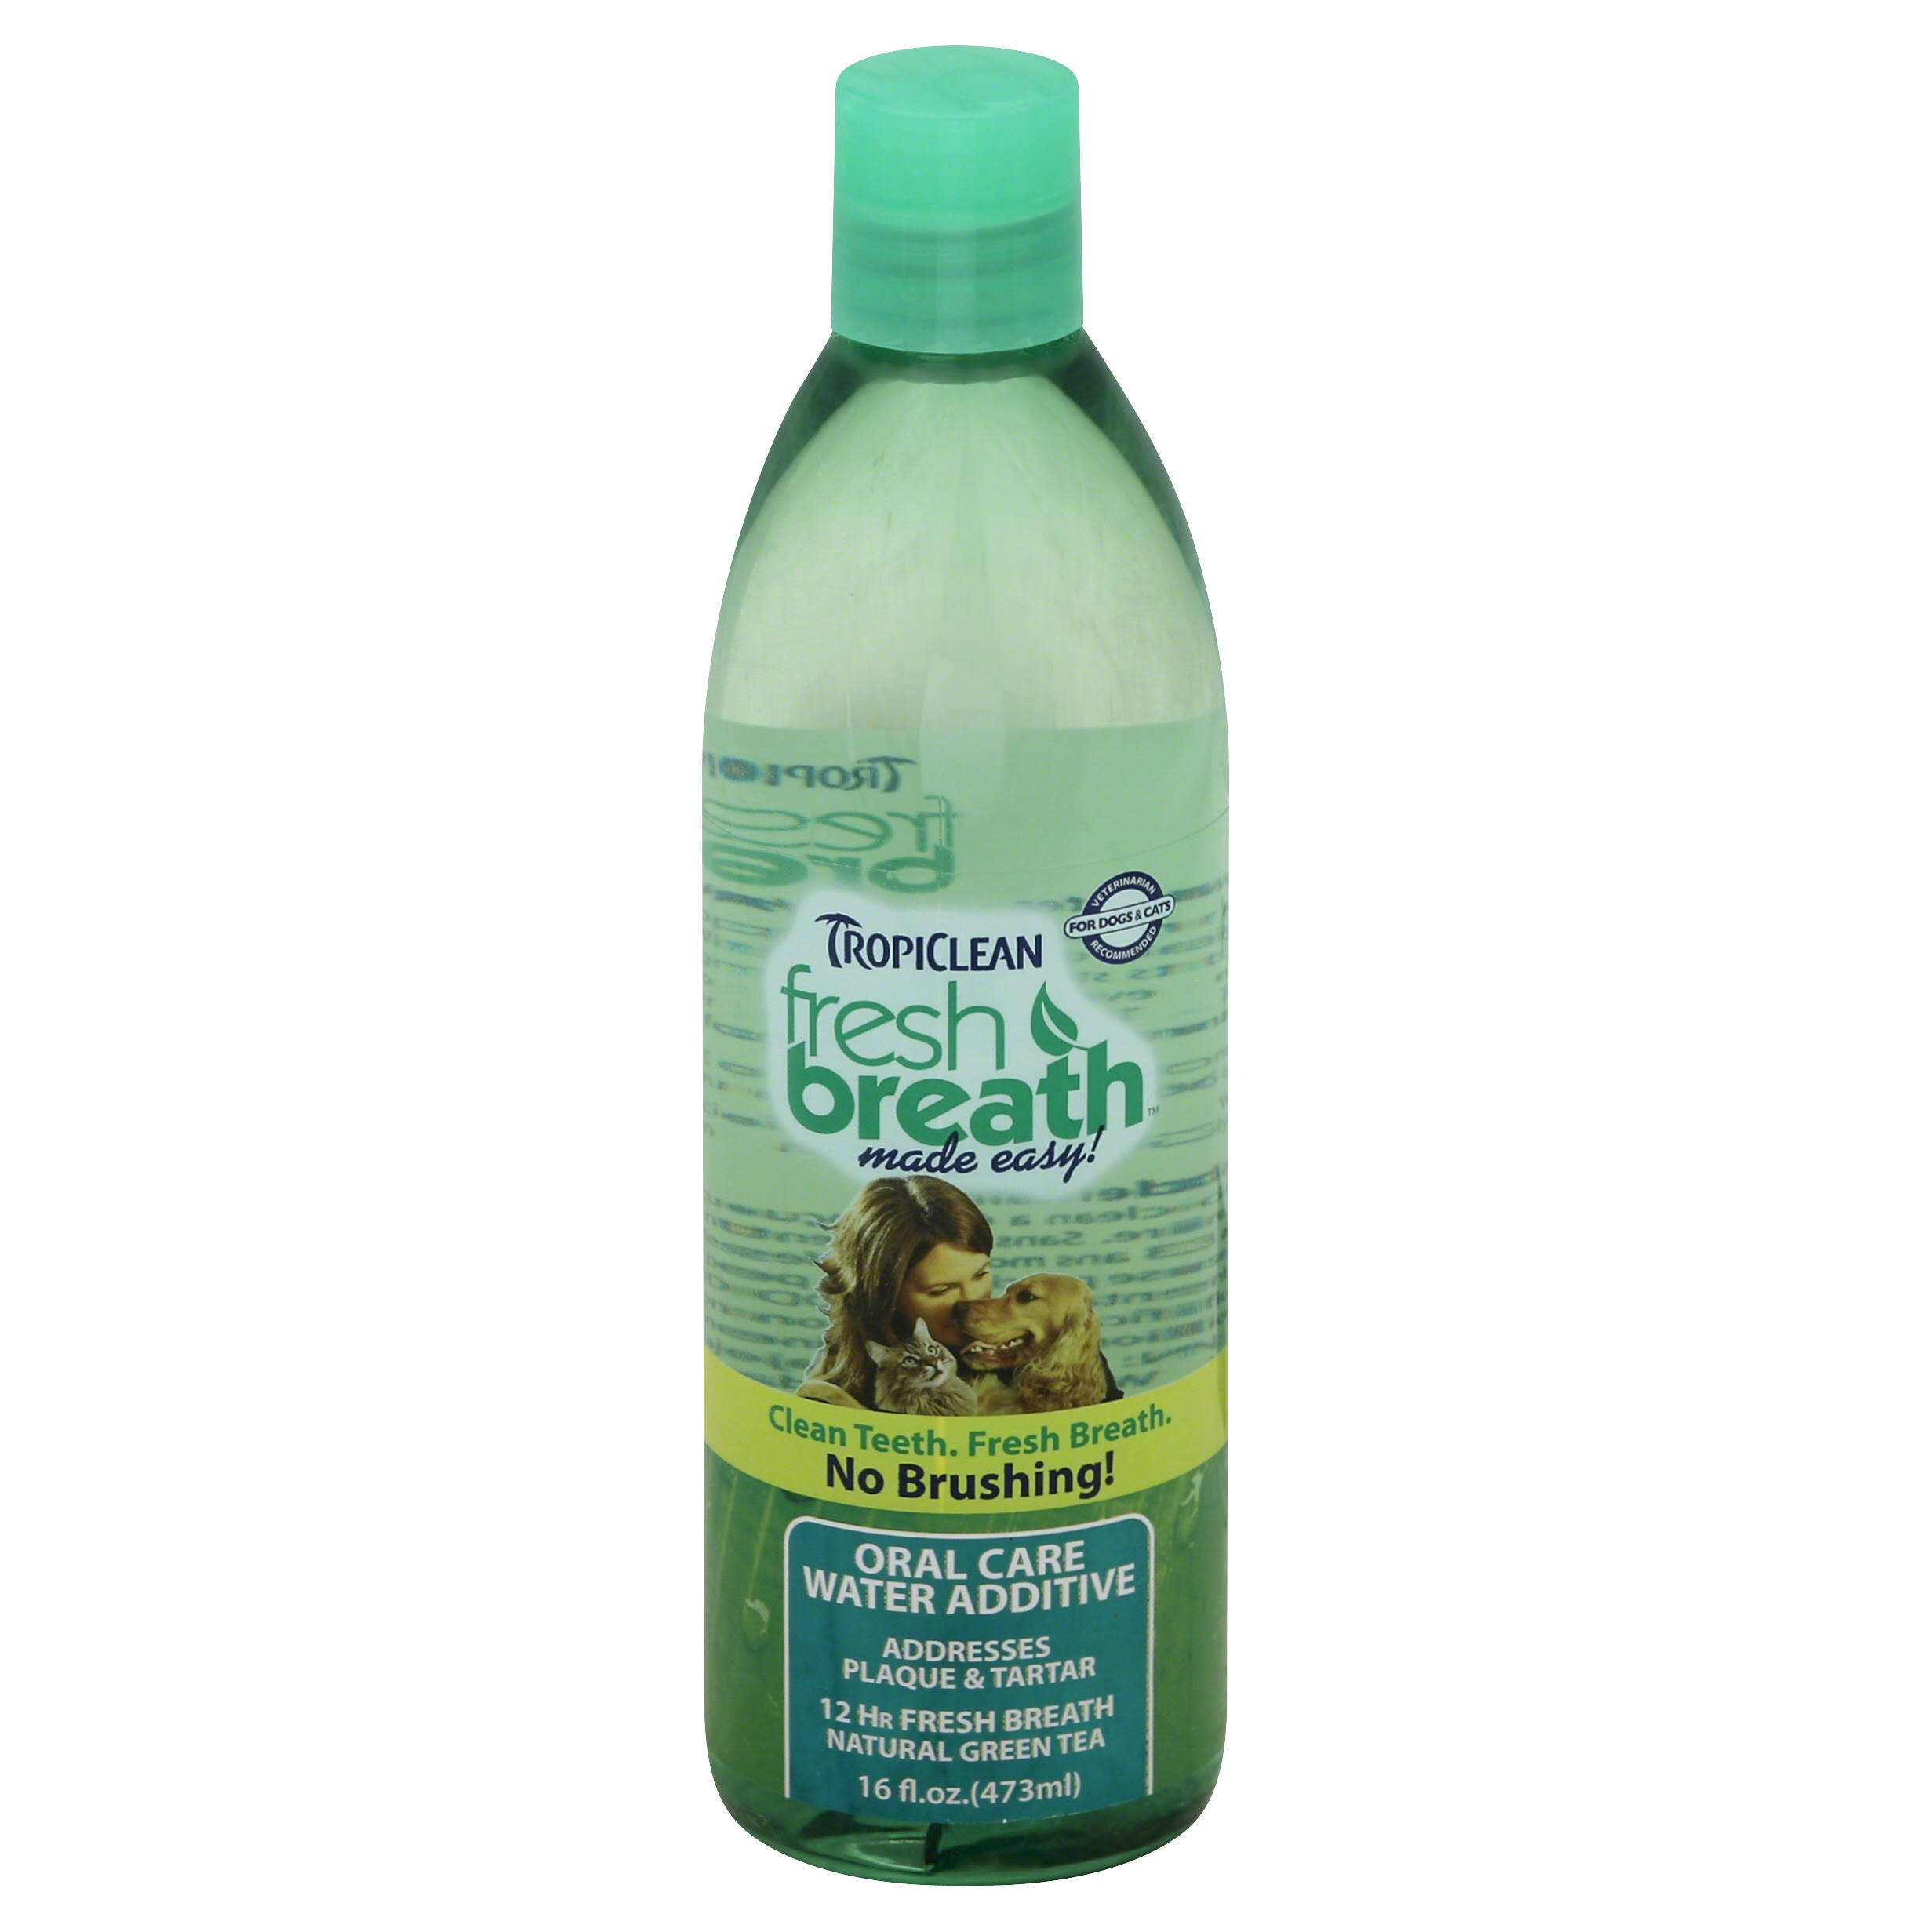 Tropiclean Fresh Breath Oral Care Water Additive - 473ml